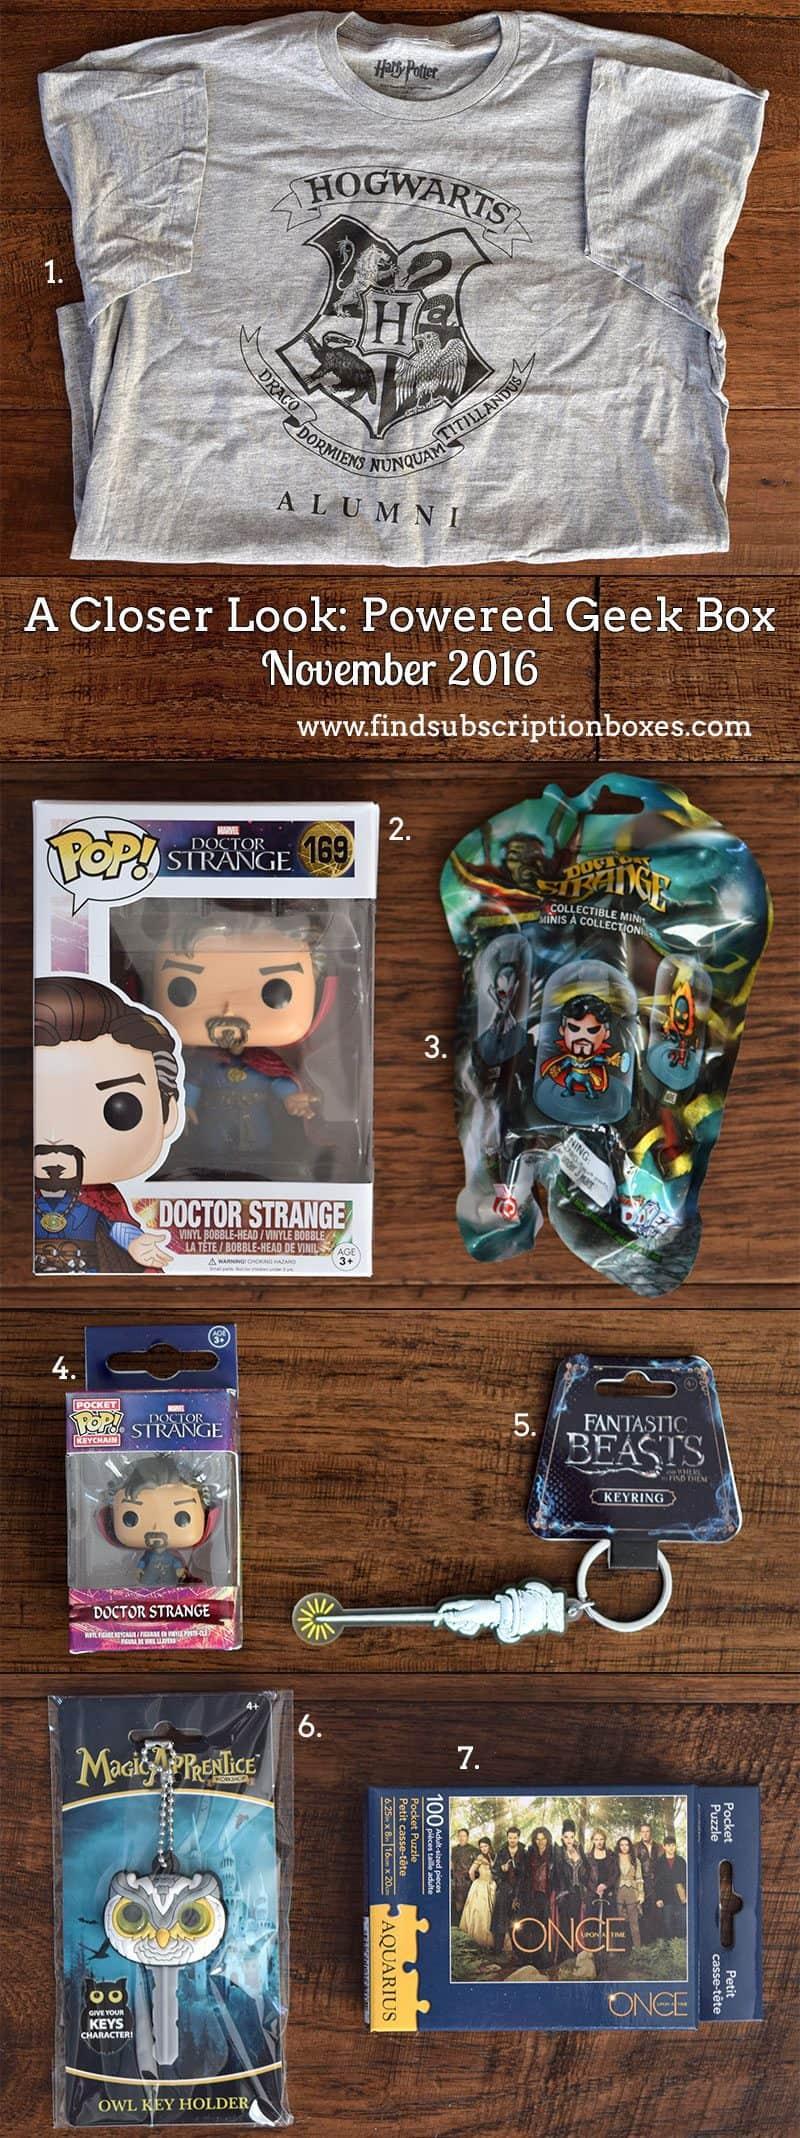 Powered Geek Box November 2016 Review - Inside the Box